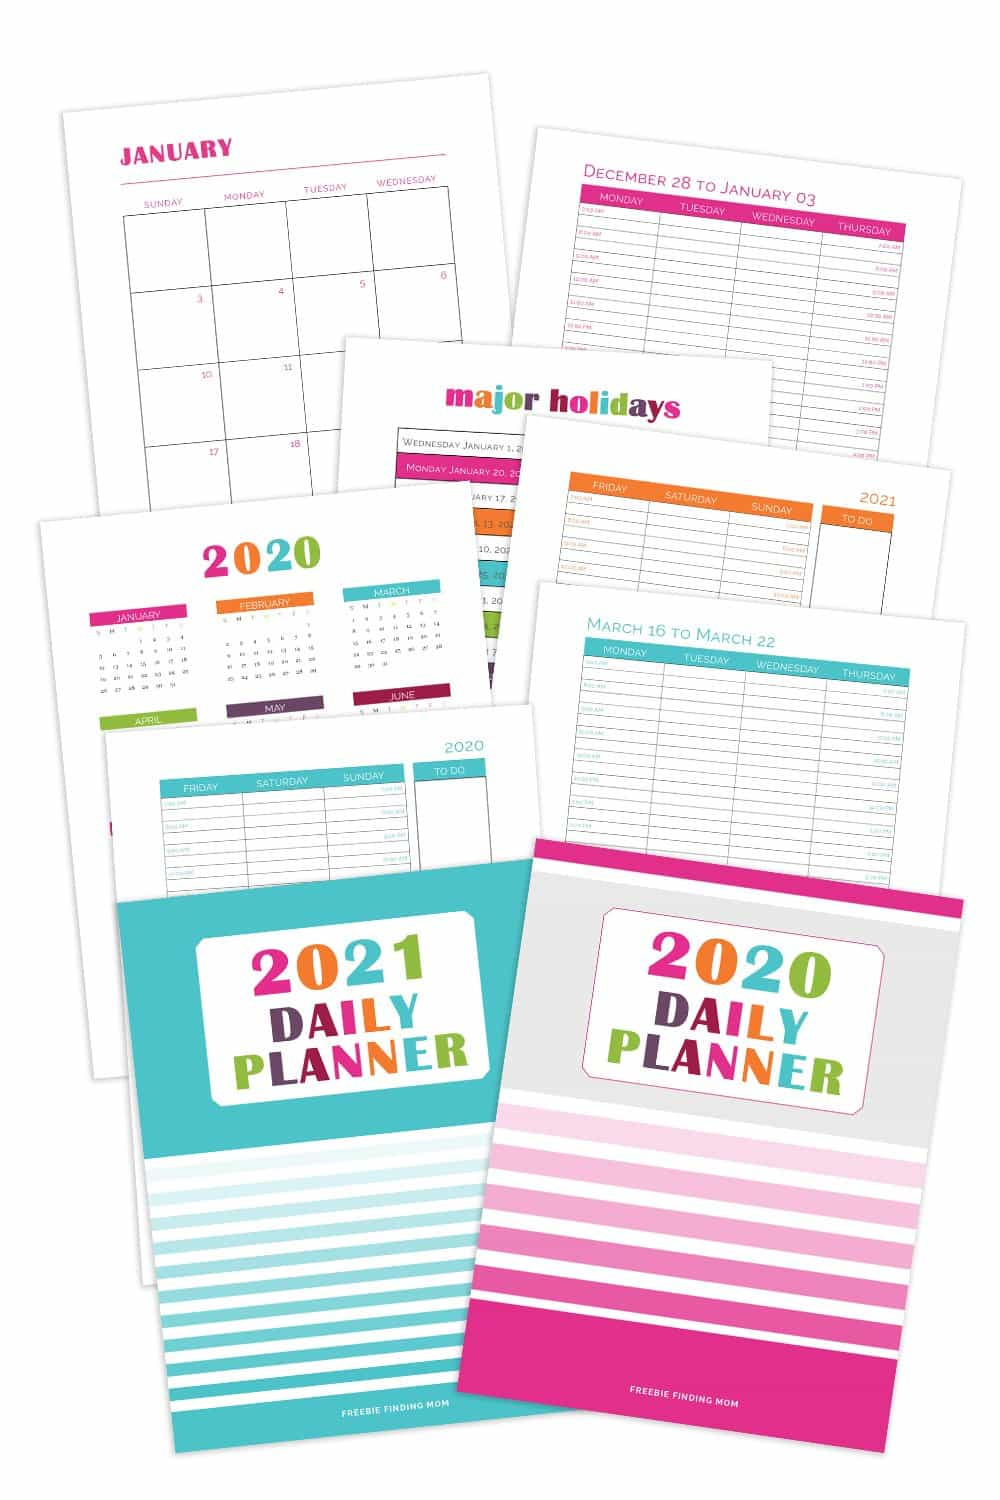 2021 Daily Planner Bundle